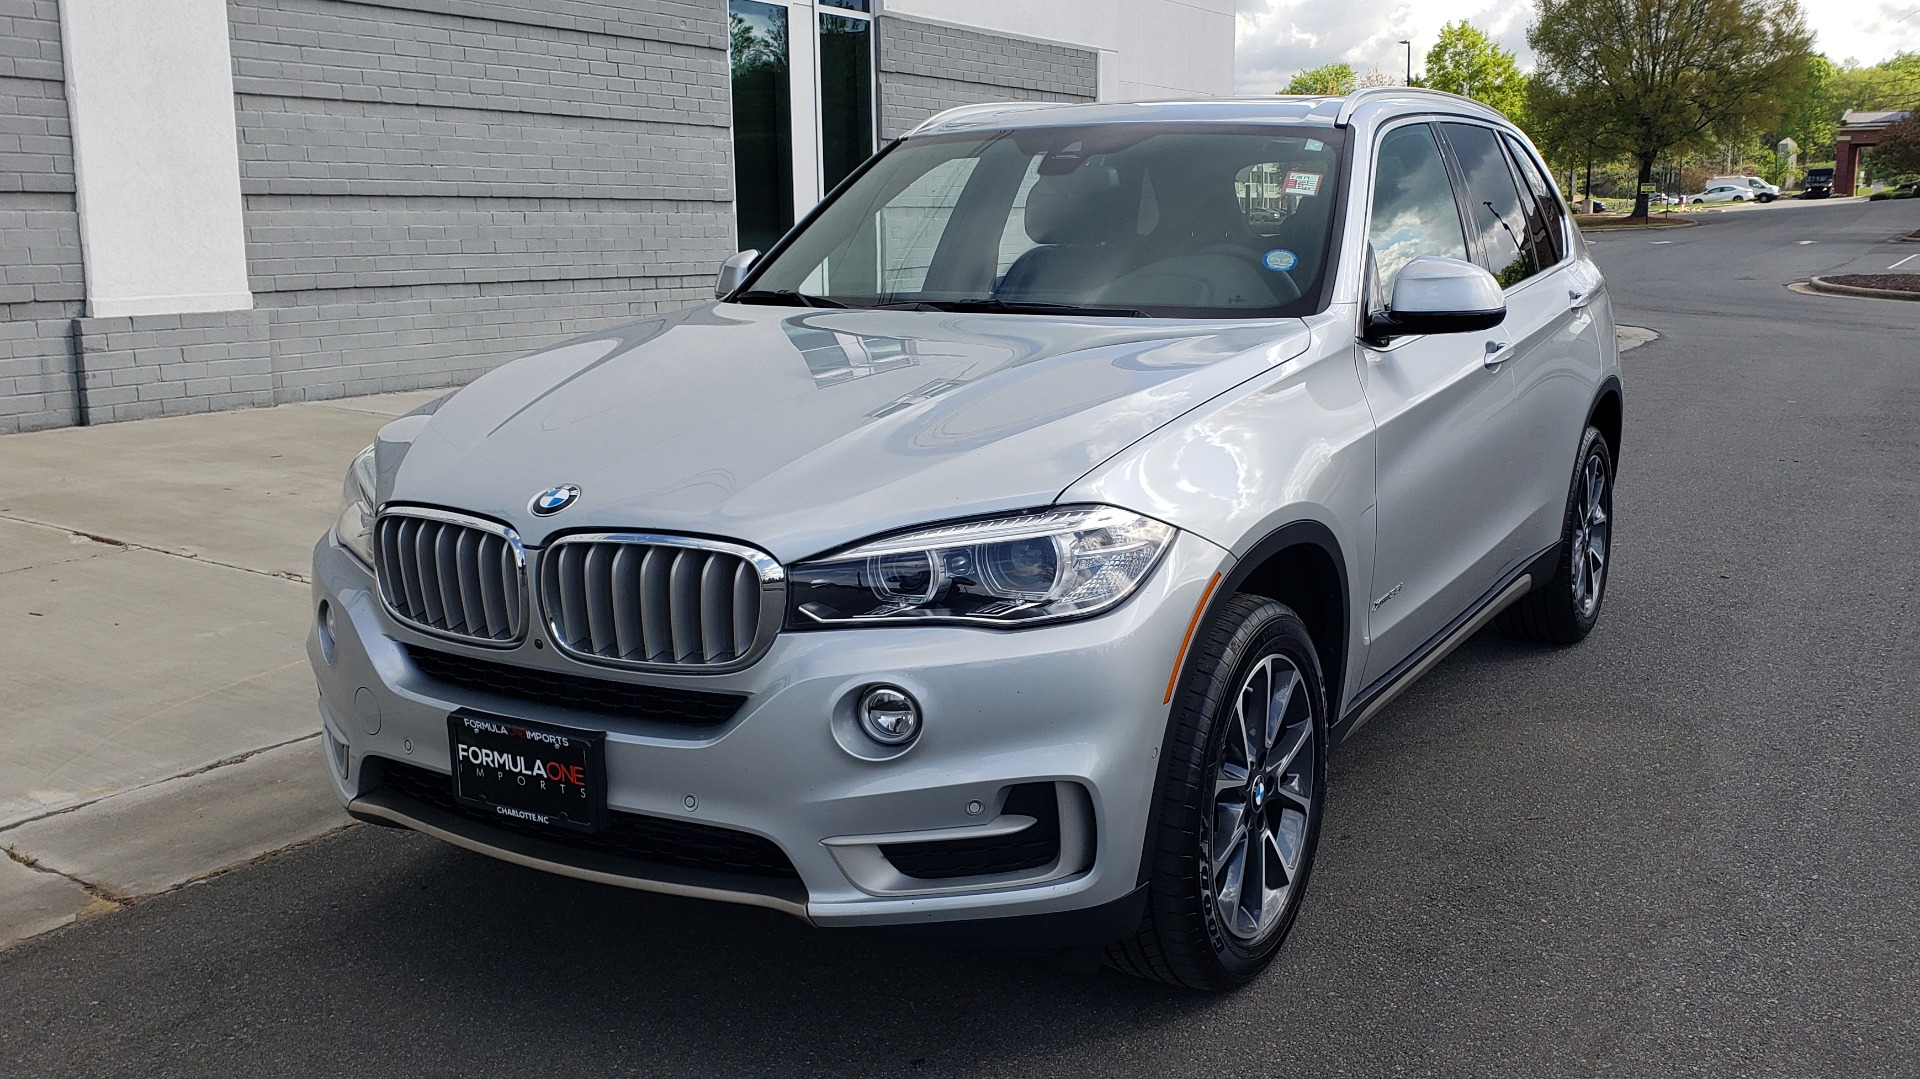 Used 2018 BMW X5 XDRIVE35I PREMIUM / NAV / PANO-ROOF / DRIVER ASST / REARVIEW for sale Sold at Formula Imports in Charlotte NC 28227 3